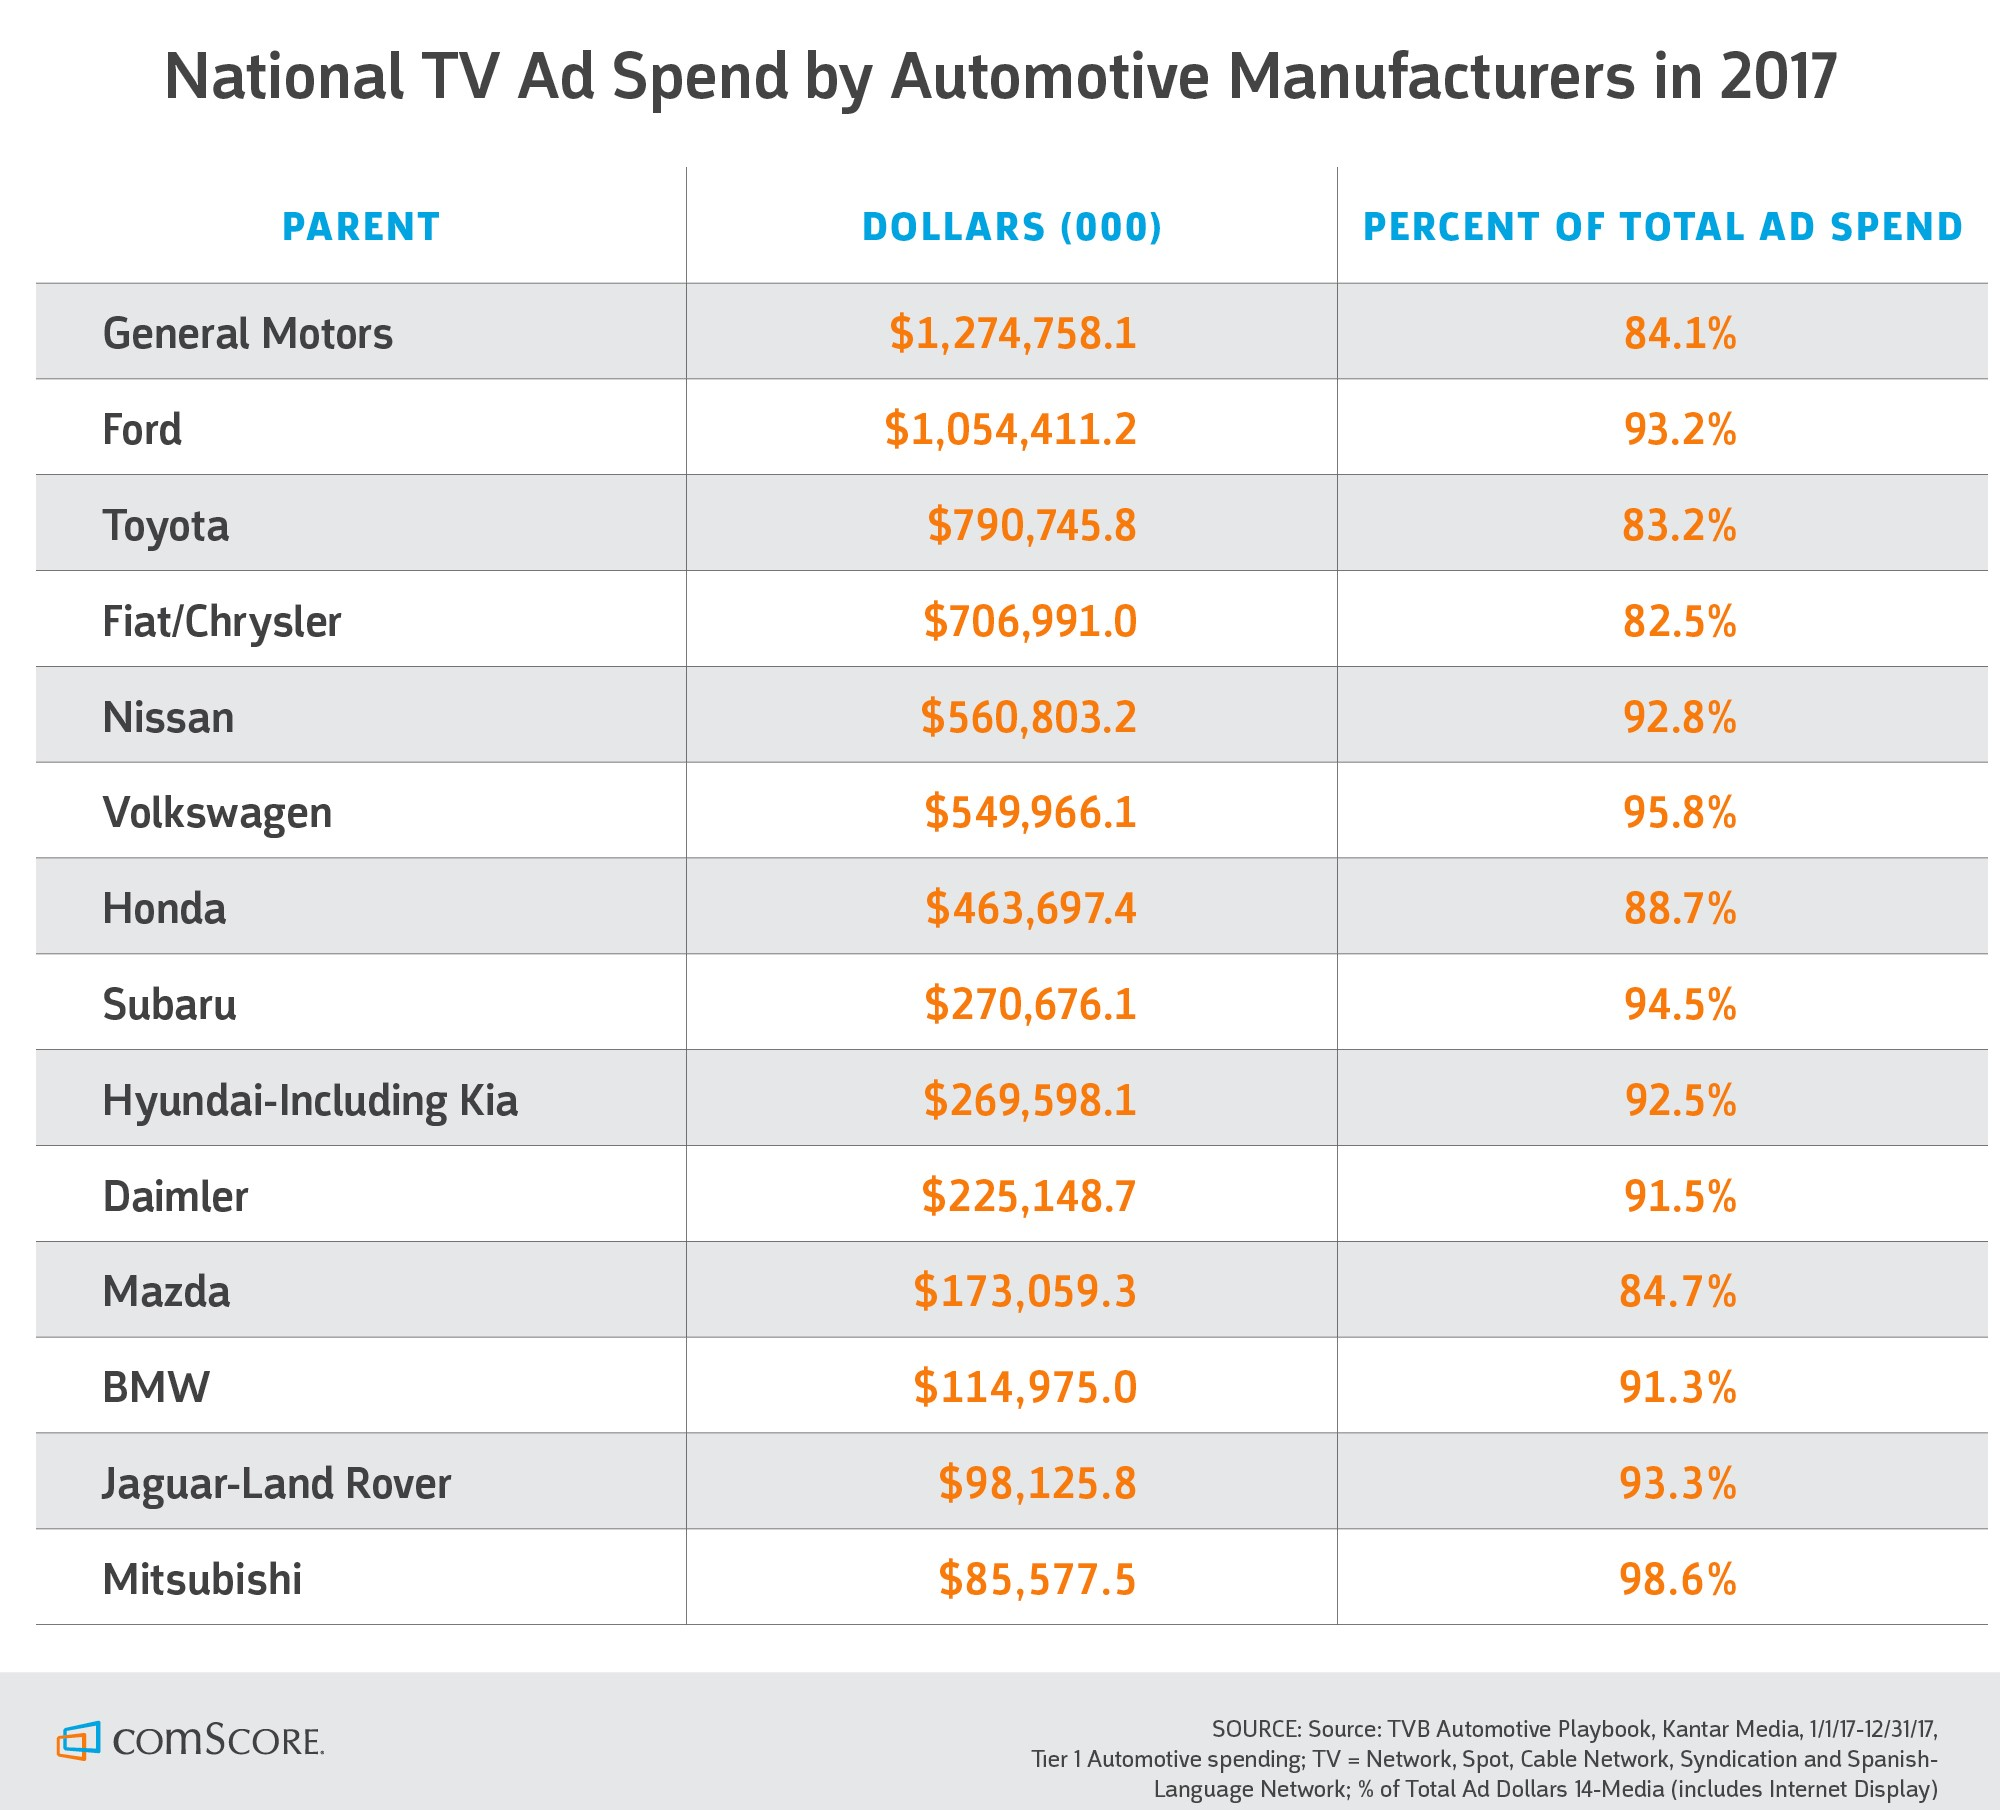 National TV Ad Spend